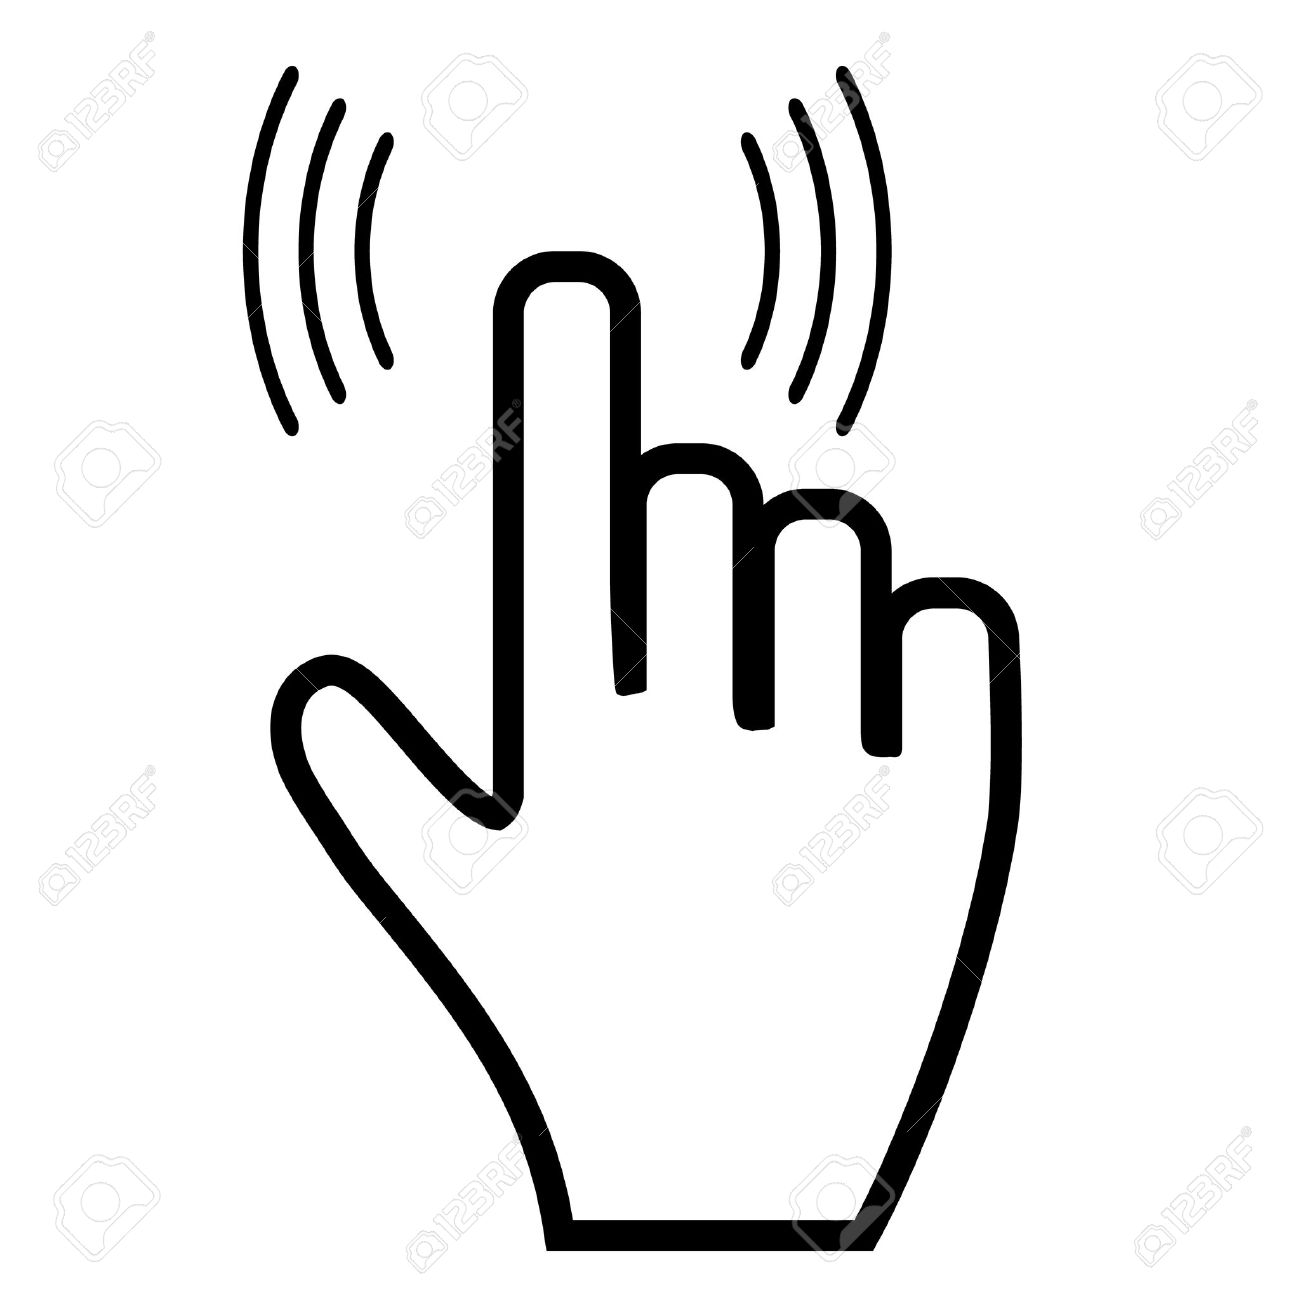 click hand icon pointer royalty free cliparts vectors and stock rh 123rf com hand drawn icon vector hand icon vector eps